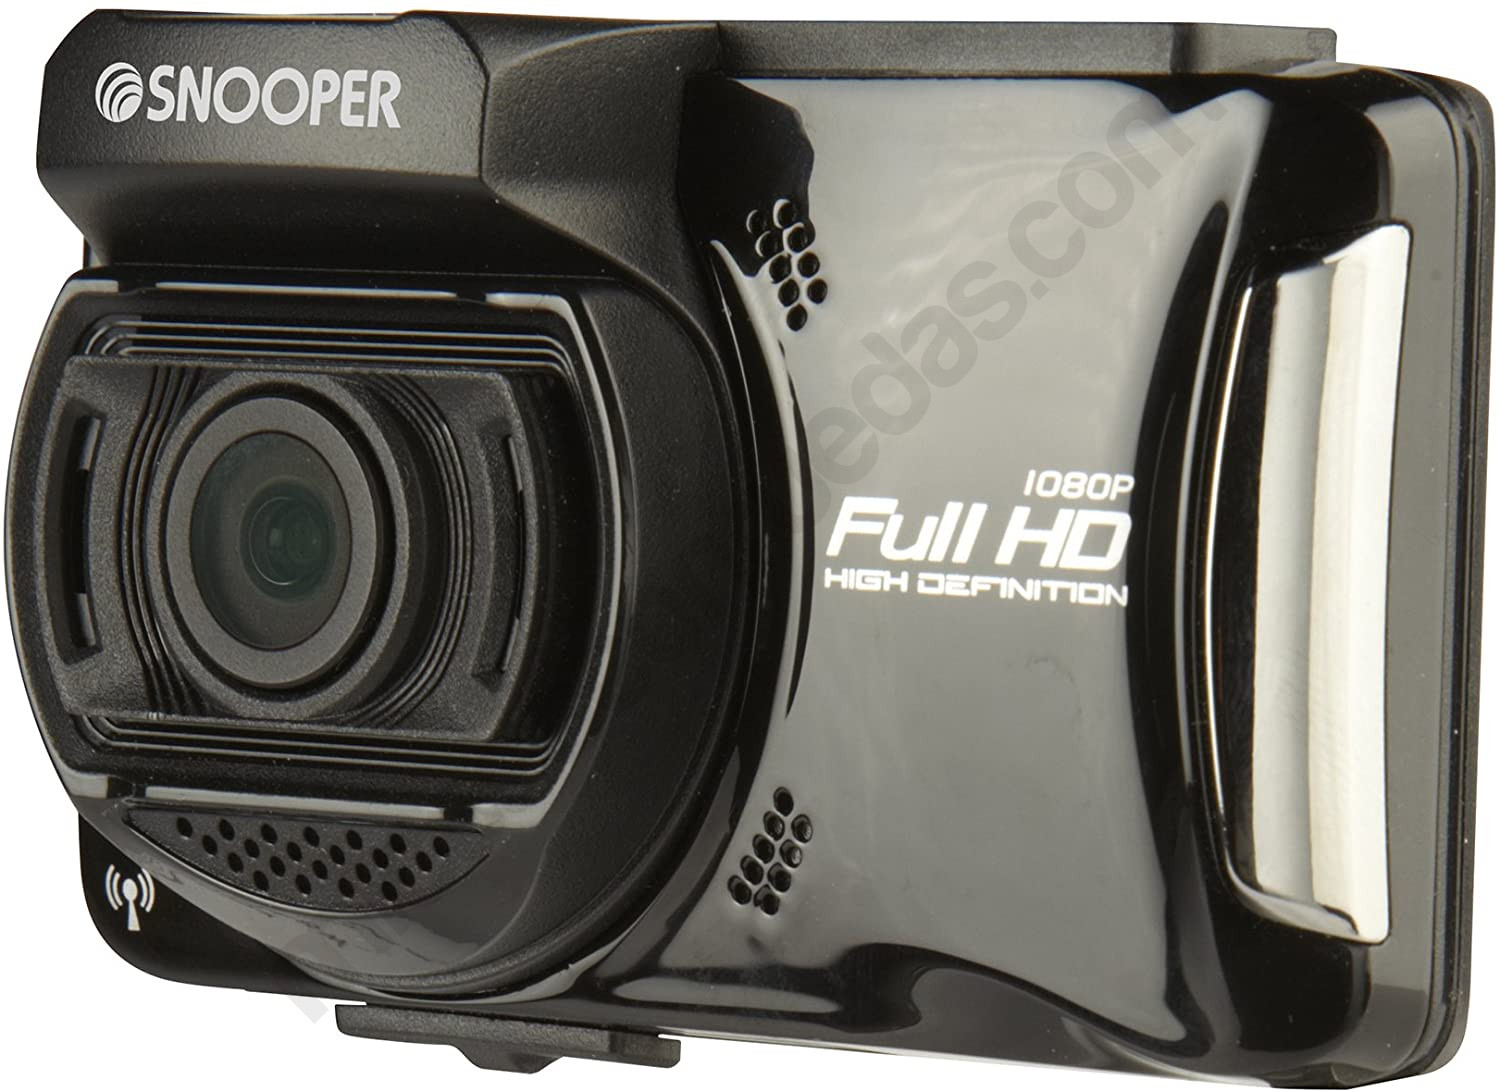 camara gravacion video Snooper